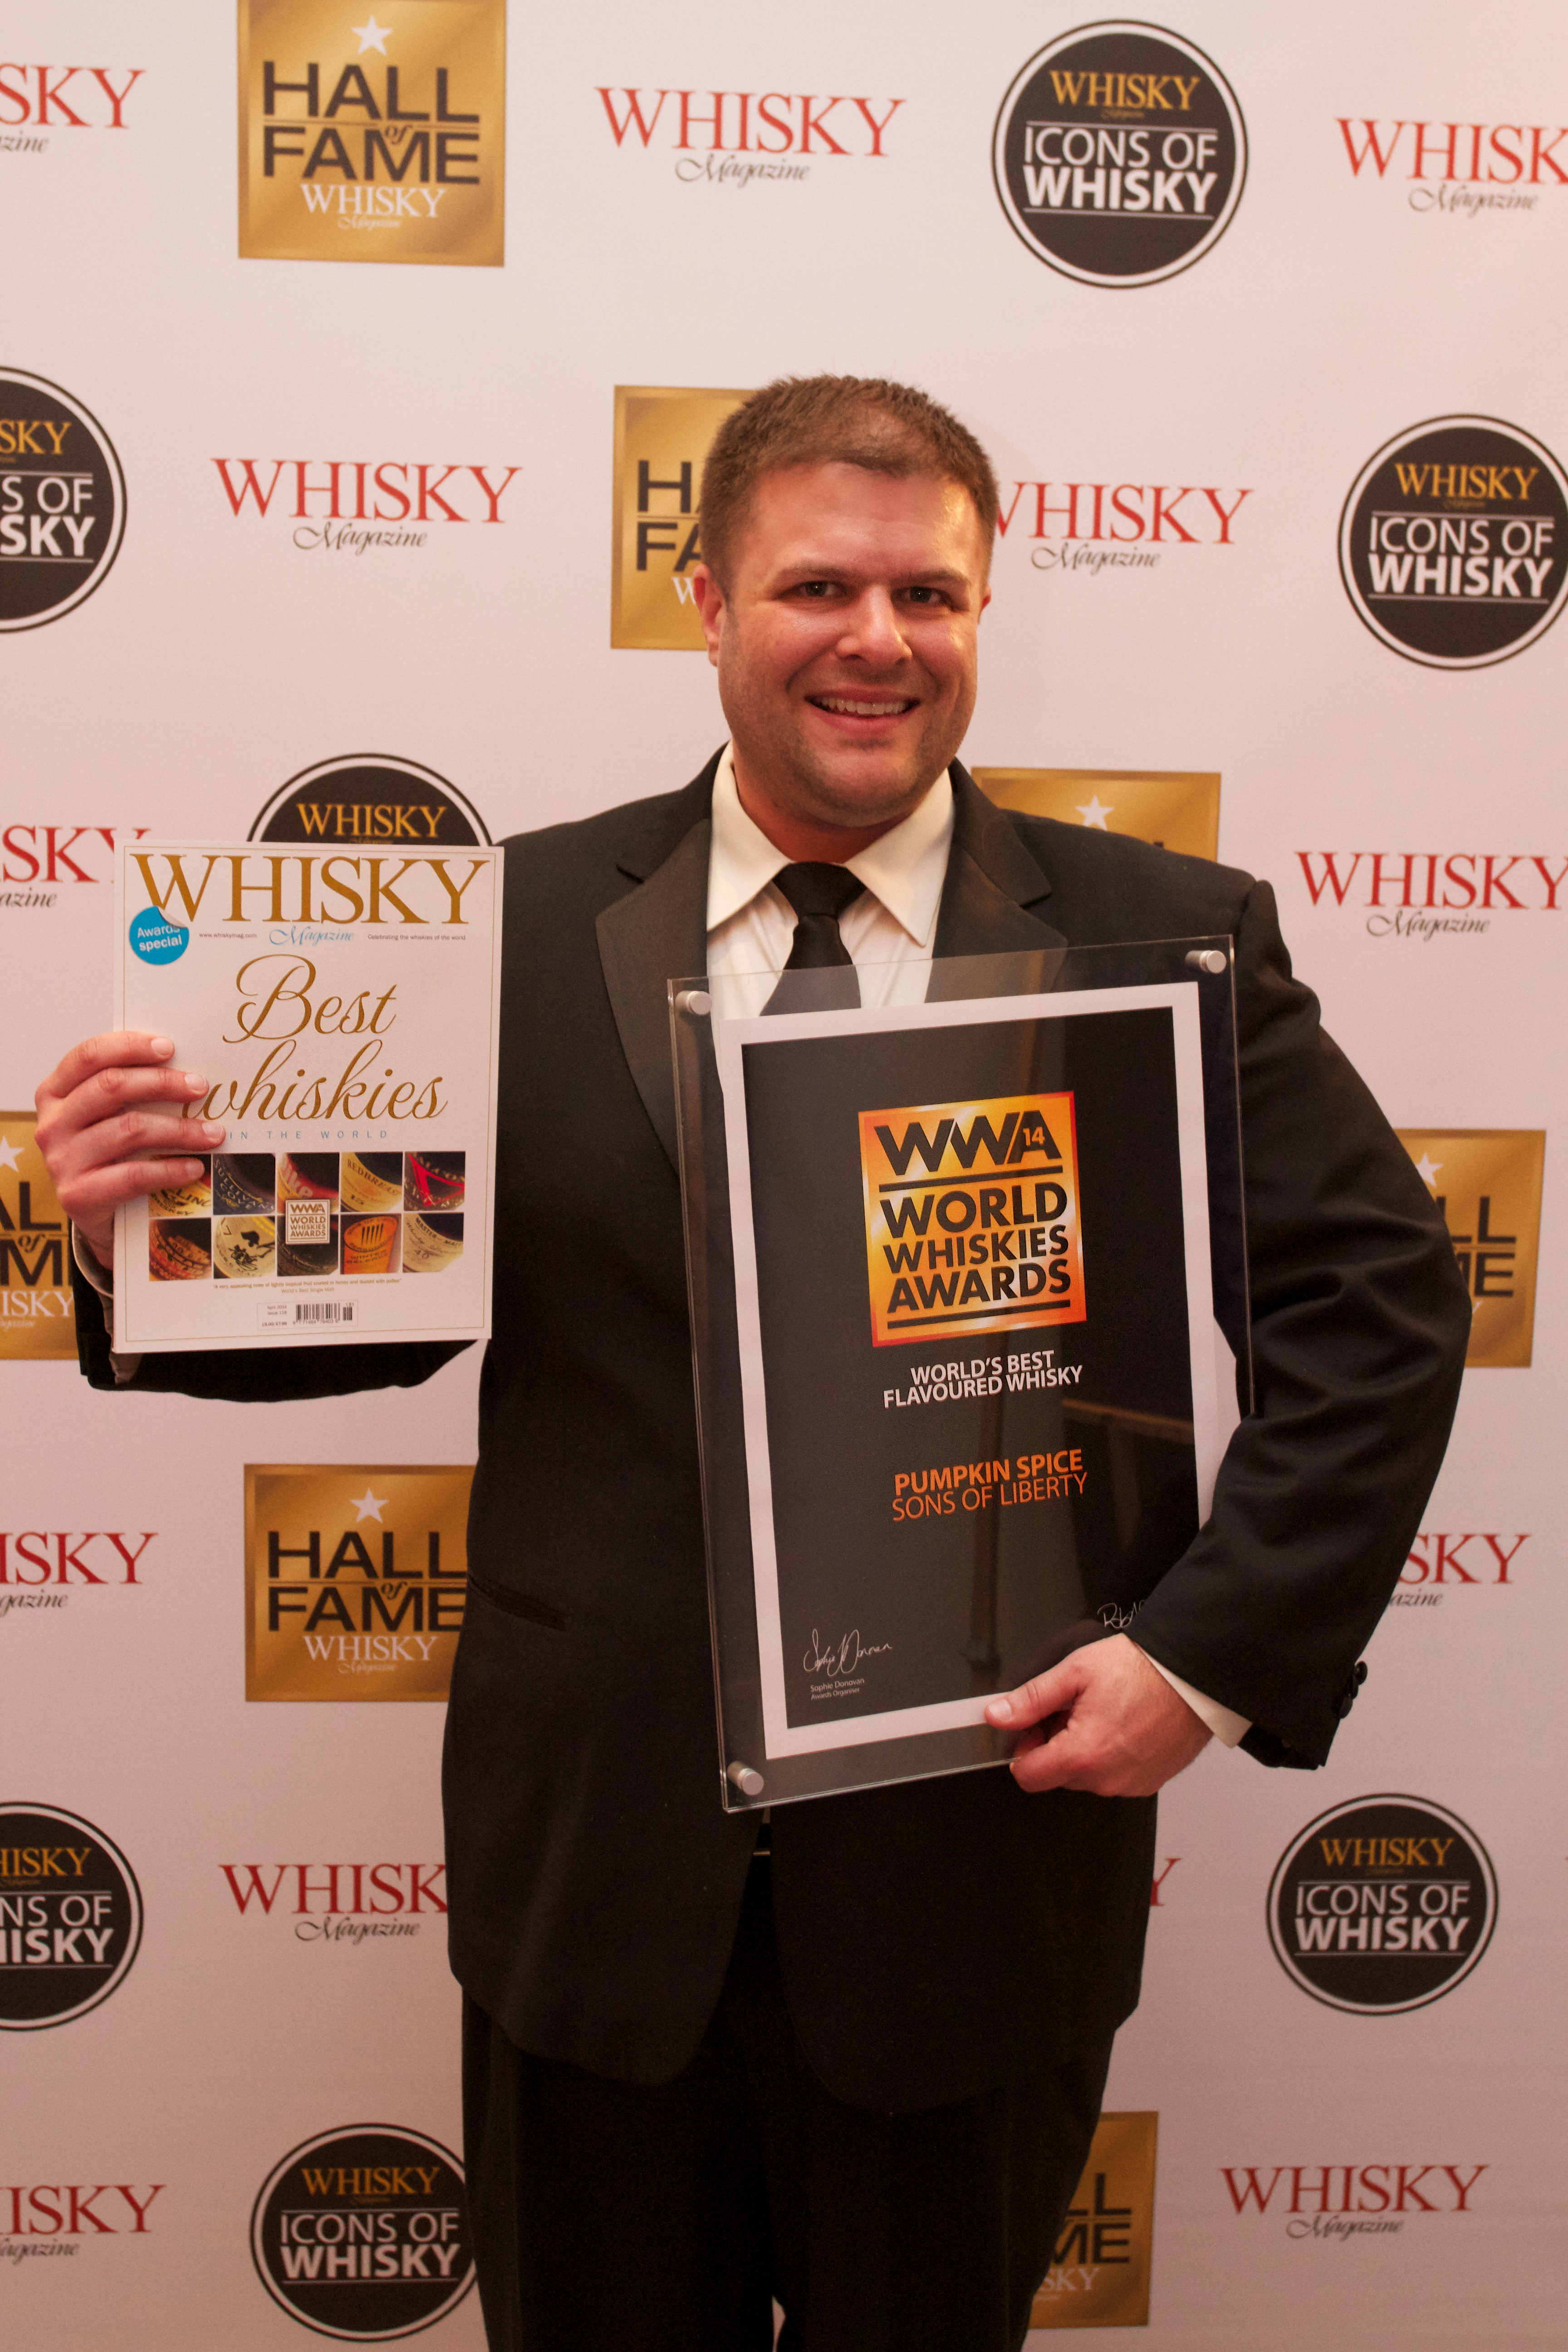 """Sons of Liberty Founder Mike Reppucci seen here at Whiskey Magazine's World Whiskies Awards in London for winning a """"World's Best"""" award in the Best Flavored Whiskey category for their Pumpkin Spice. (Photo: Business Wire)"""